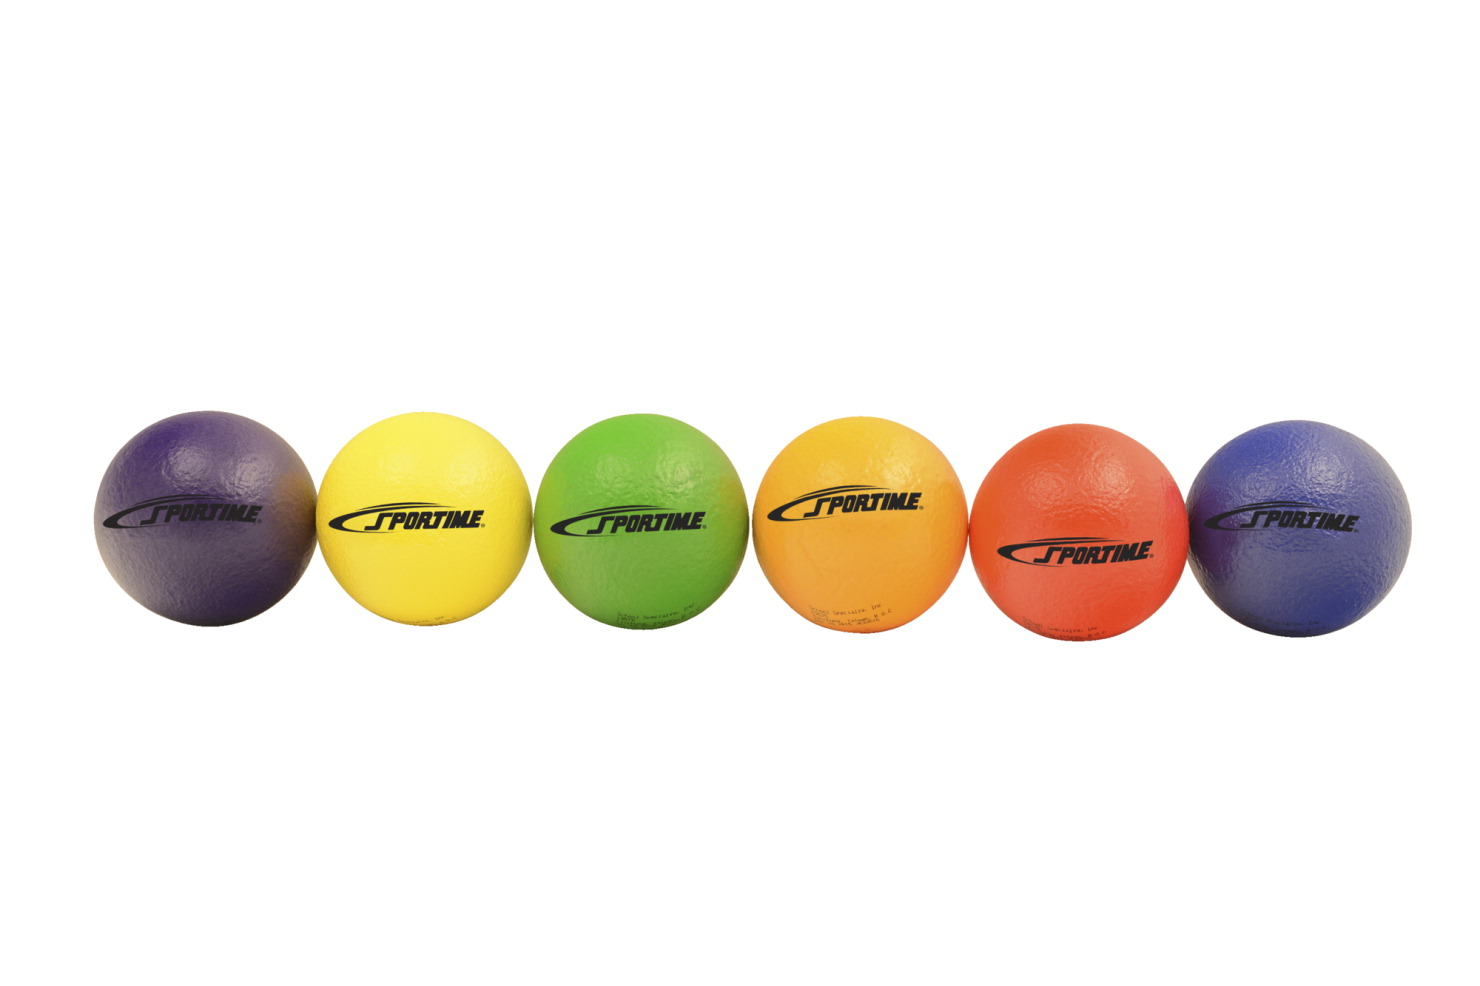 Sportime TechnoSkin Coated-Foam Balls, 2-3/4 Inches, Set of 6